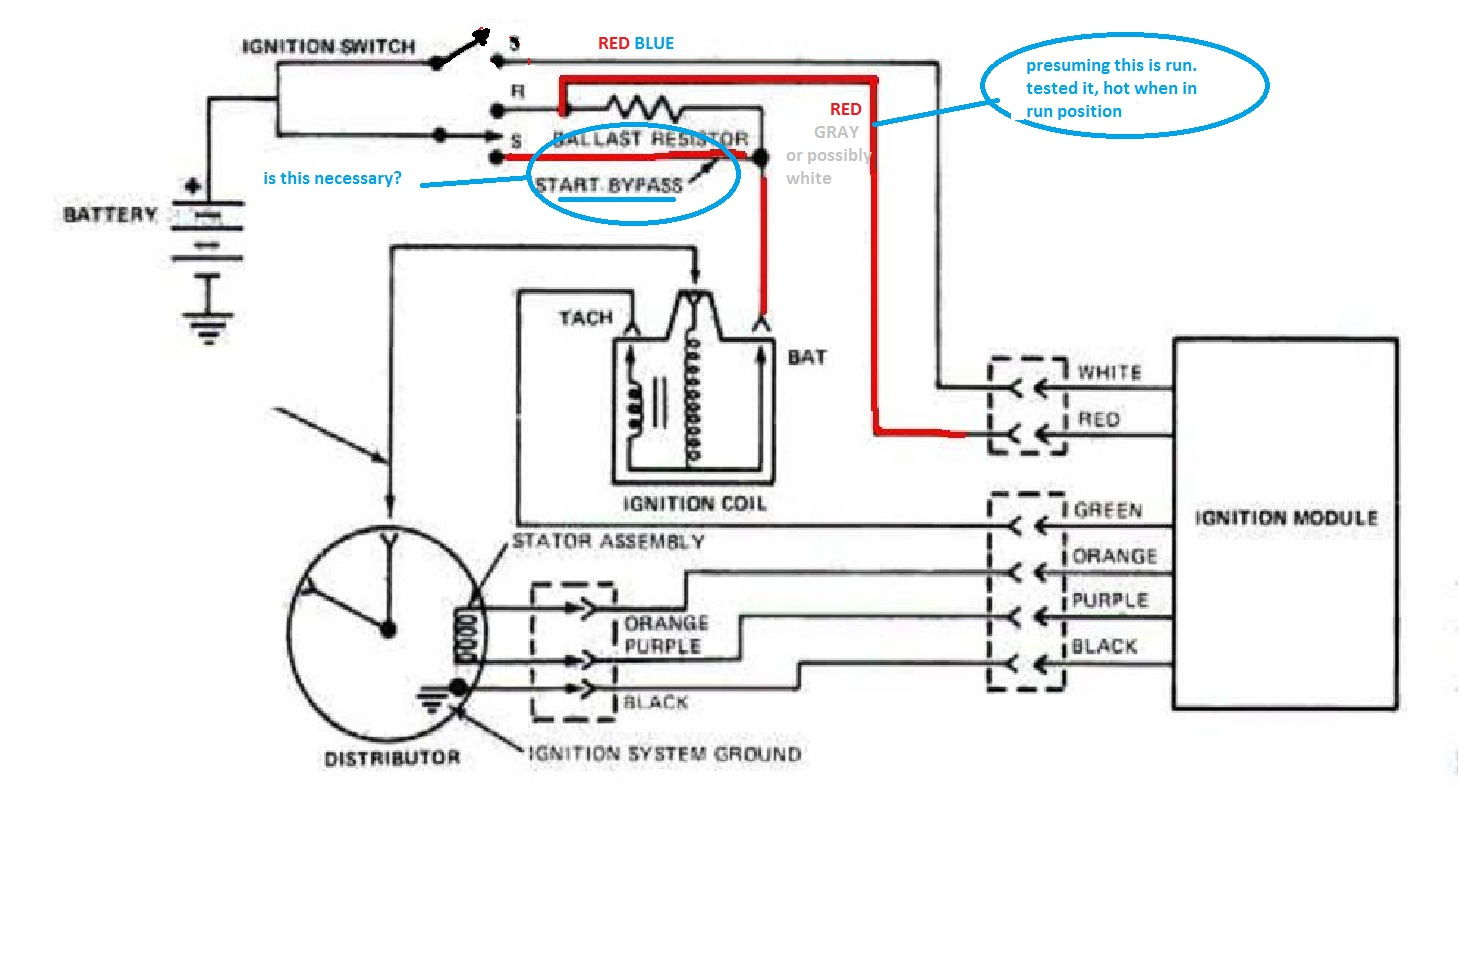 duraspark wiring diagram ford guitar output jack 75 ignition module get free image